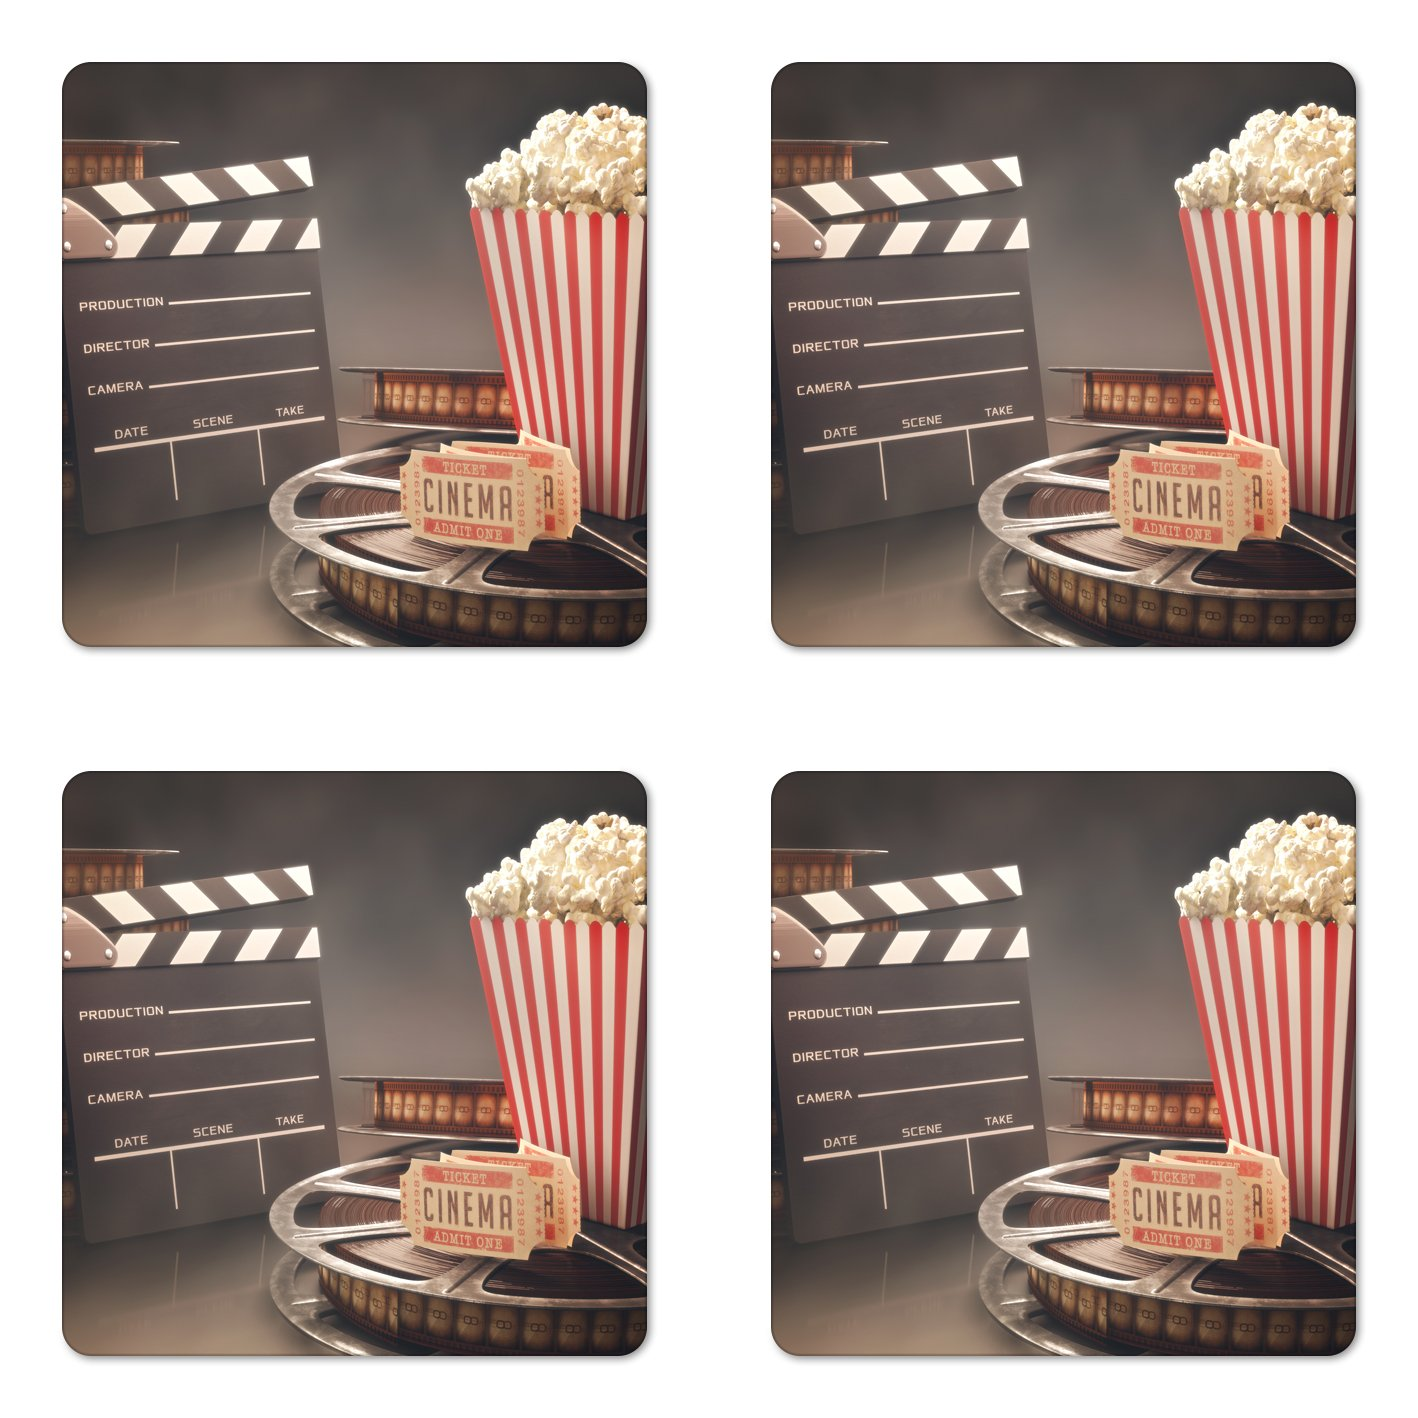 Ambesonne Movie Theater Coaster Set of Four, Old Fashion Entertainment Objects Related to Cinema Film Reel Motion Picture, Square Hardboard Gloss Coasters for Drinks, Multicolor